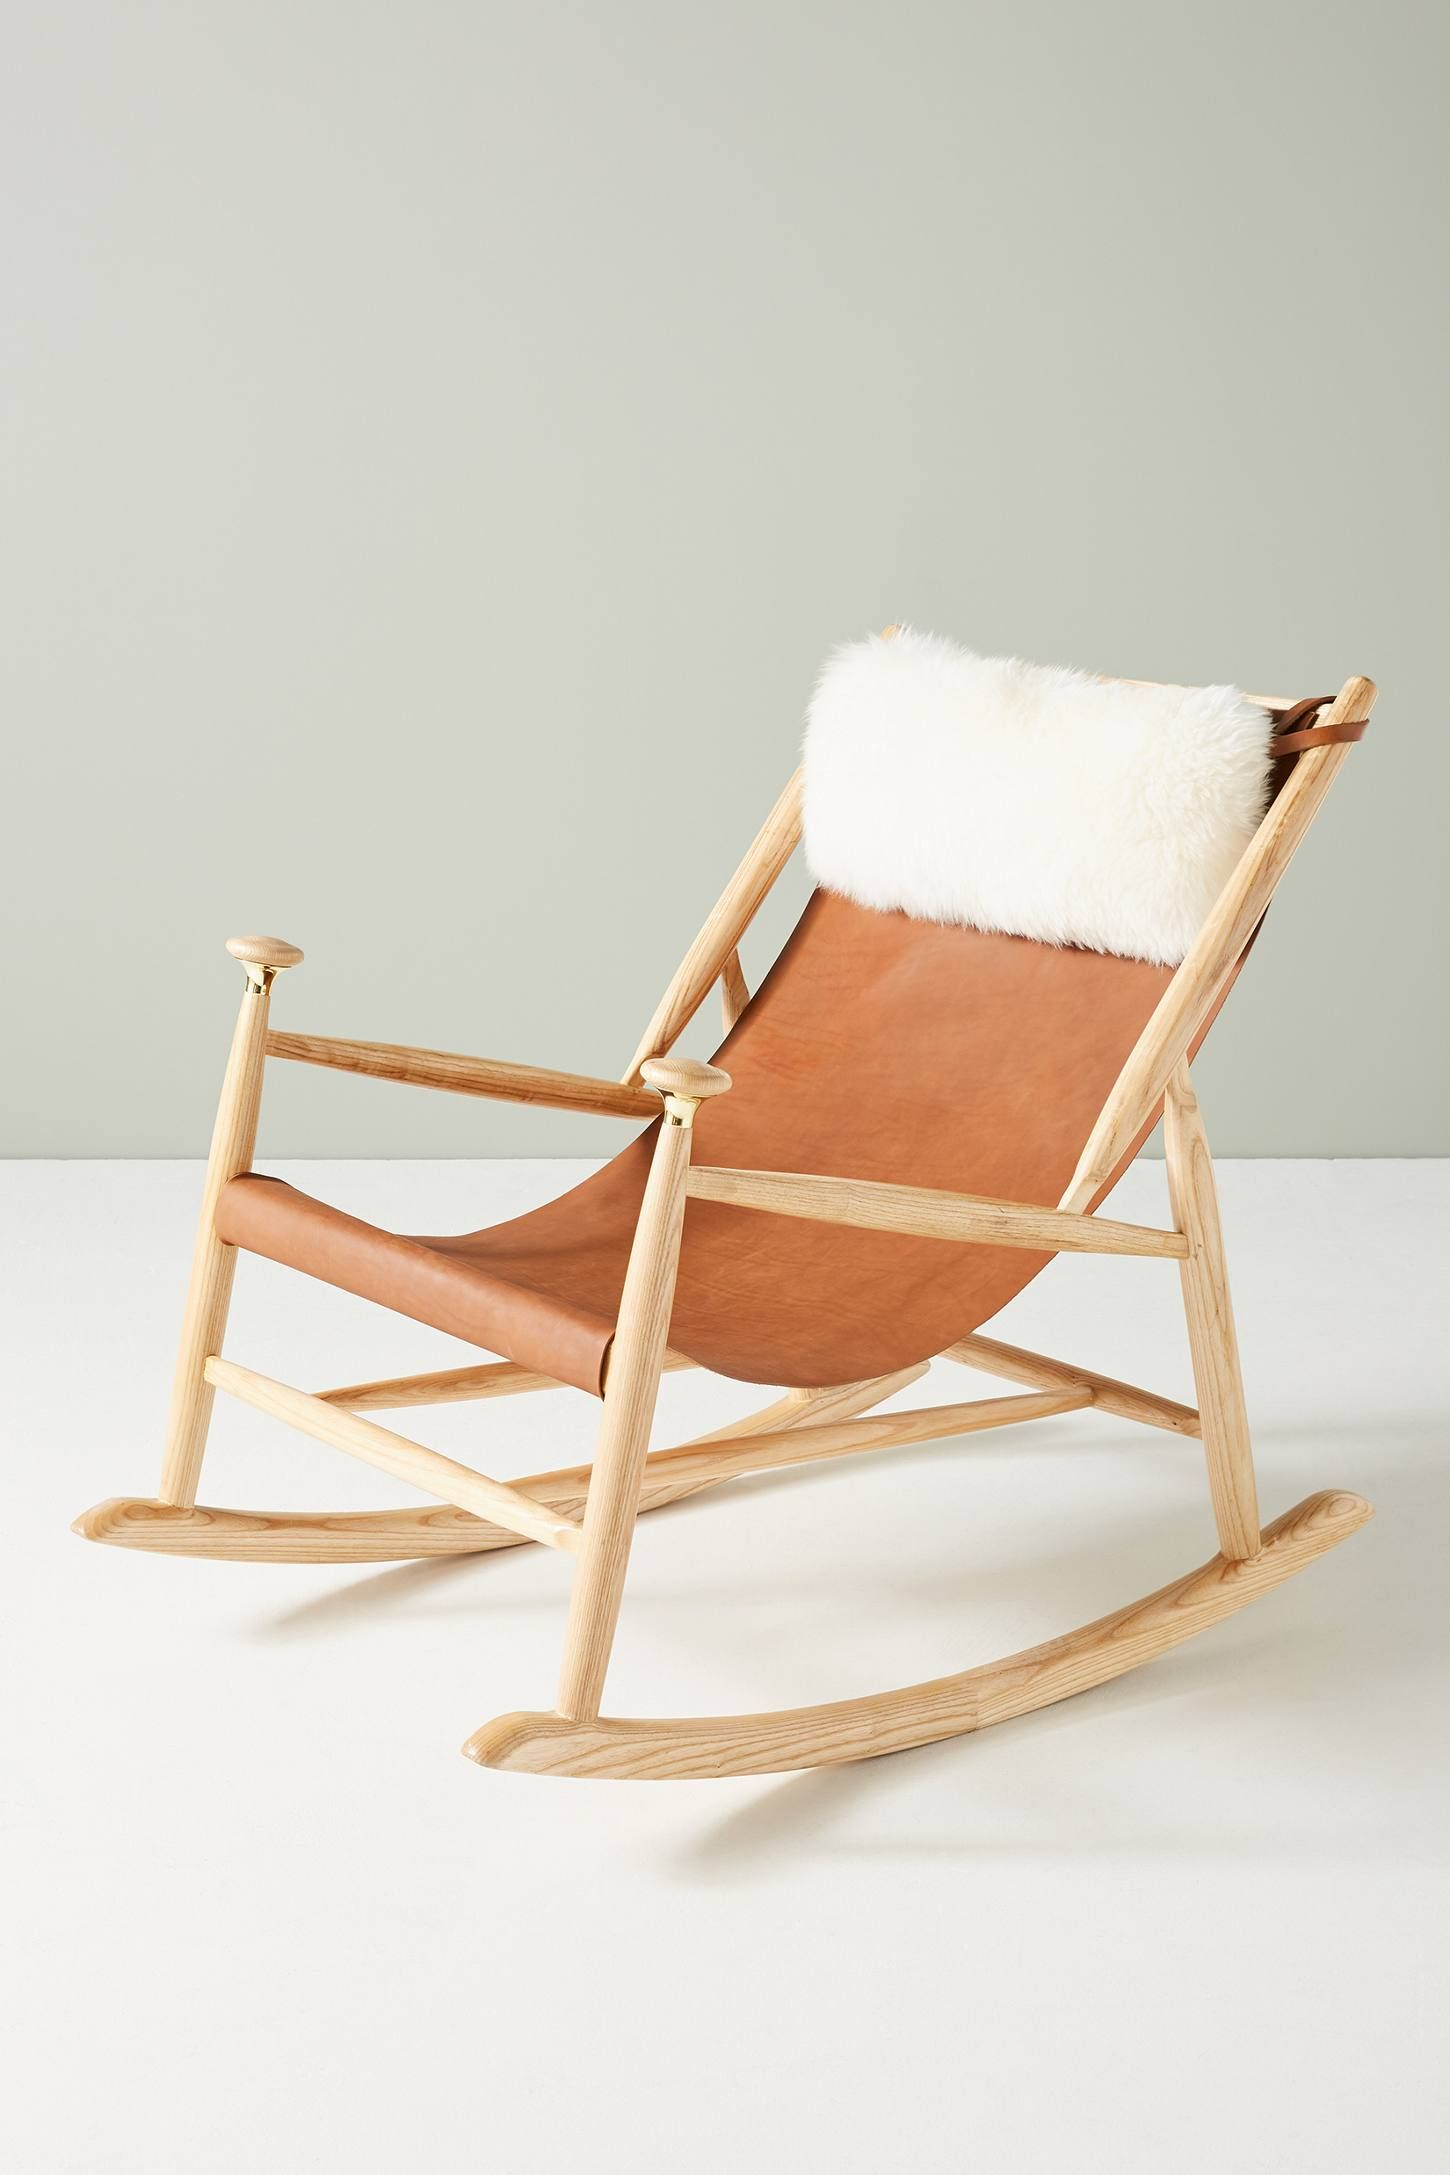 Awesome Sydney Rocking Chair In 2019 Chairs Rocking Chair Chair Onthecornerstone Fun Painted Chair Ideas Images Onthecornerstoneorg